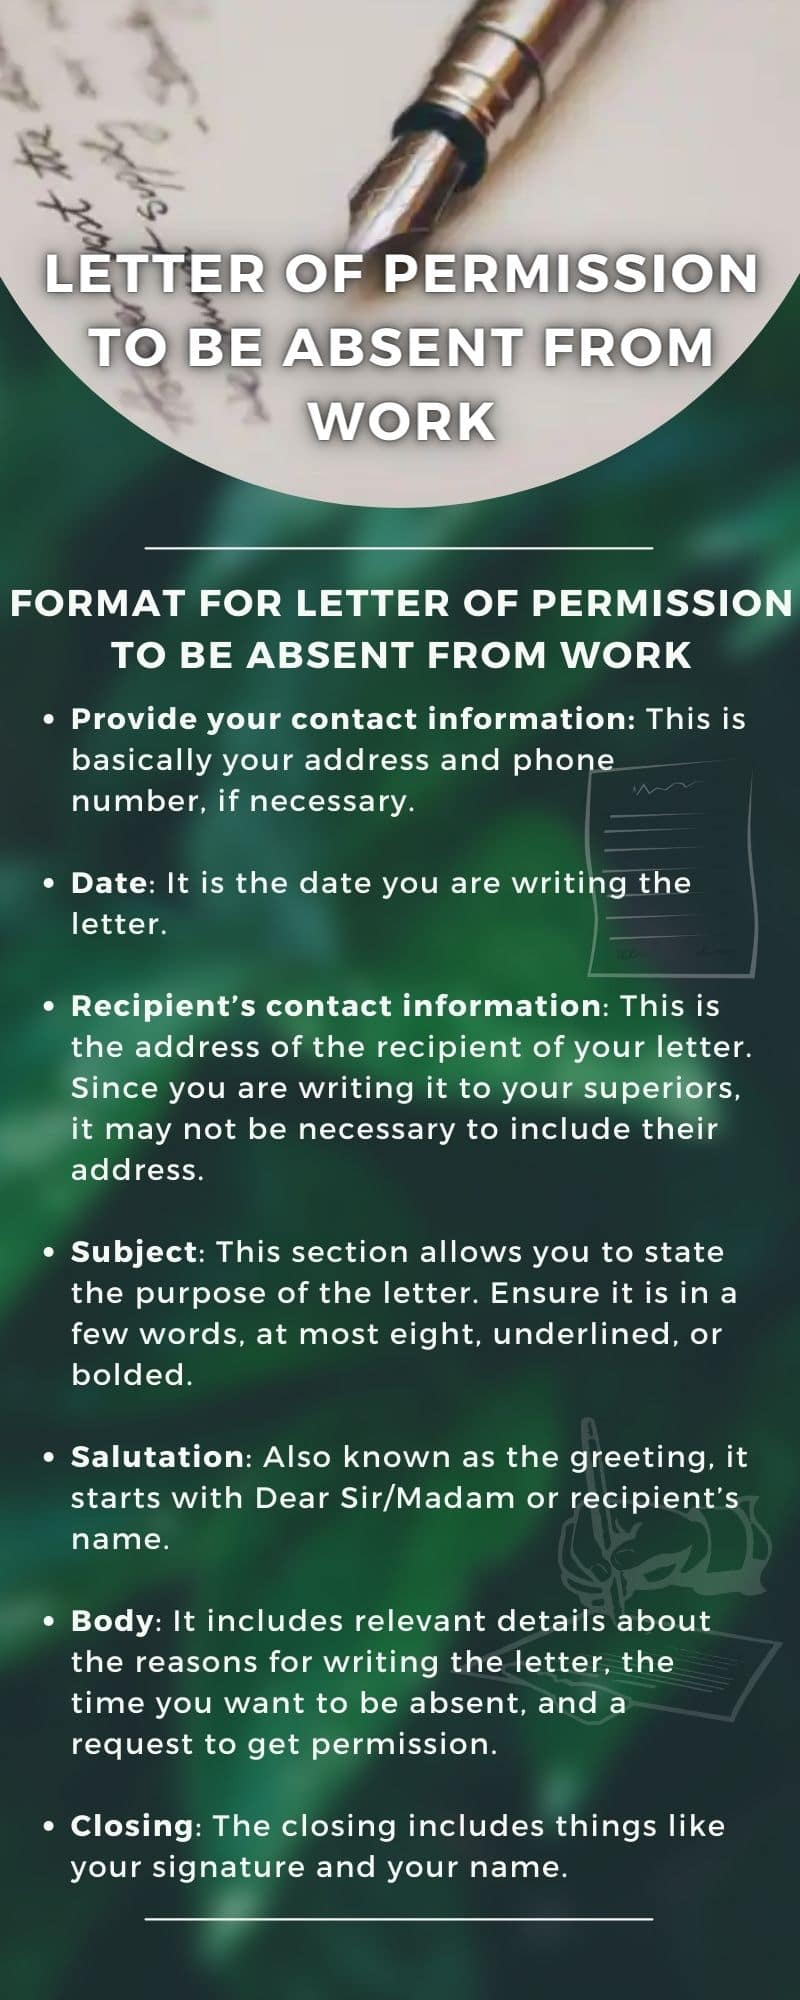 Letter of permission to be absent from work: how to write in 2021